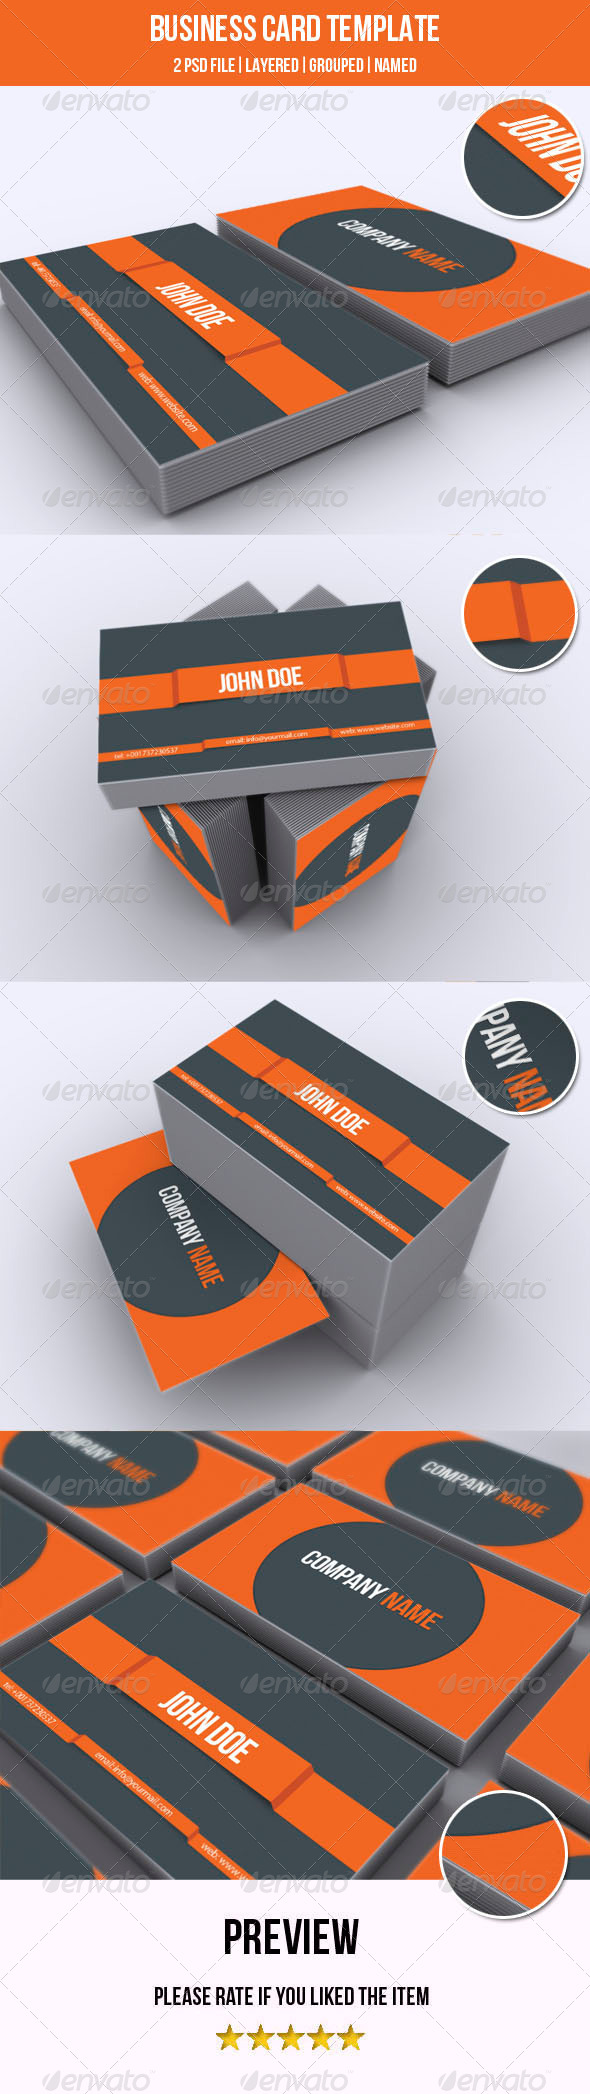 GraphicRiver Business Card Template 5314291